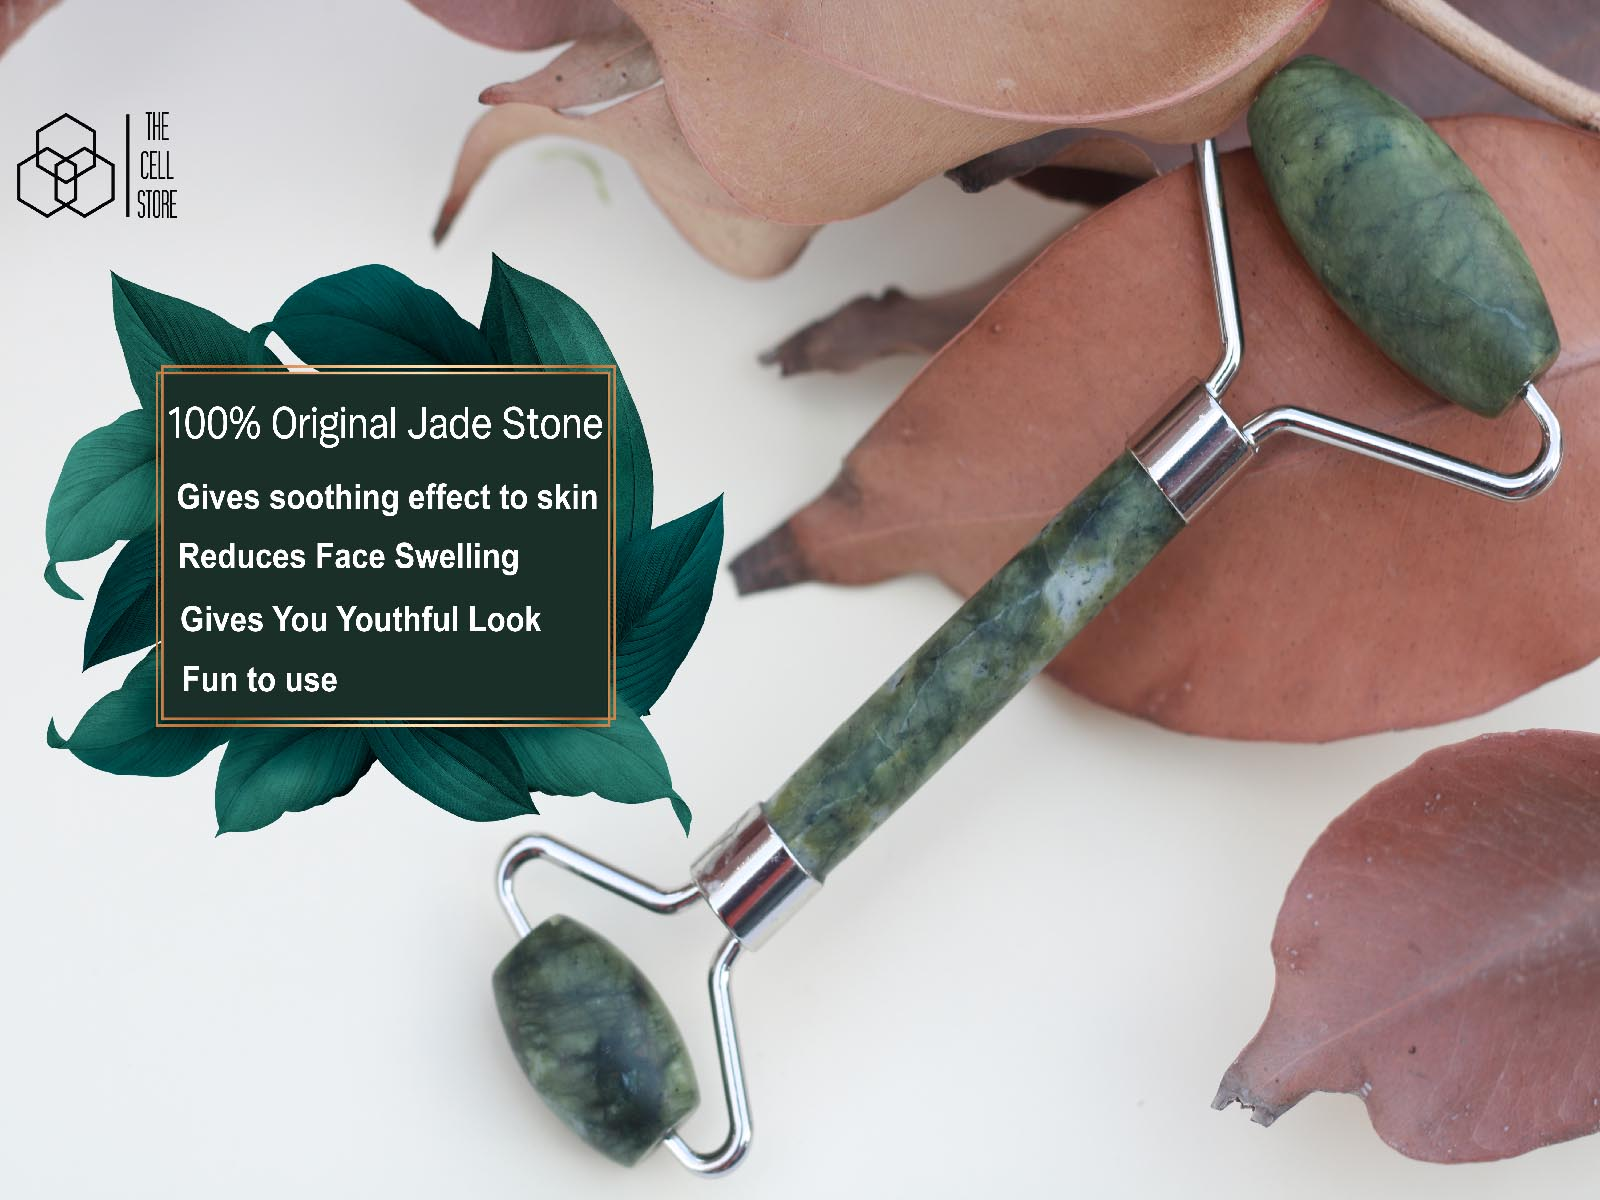 High-Quality Jade Roller   Natural Stone Jade Roller to Reduce Swelling and Ageing   Anti-Ageing Jade Roller for Men and Women   Facial Roller for Face Eyes Neck   Massager Tool Body Skin Slimming Relaxation   Authentic Durable Noiseless Design